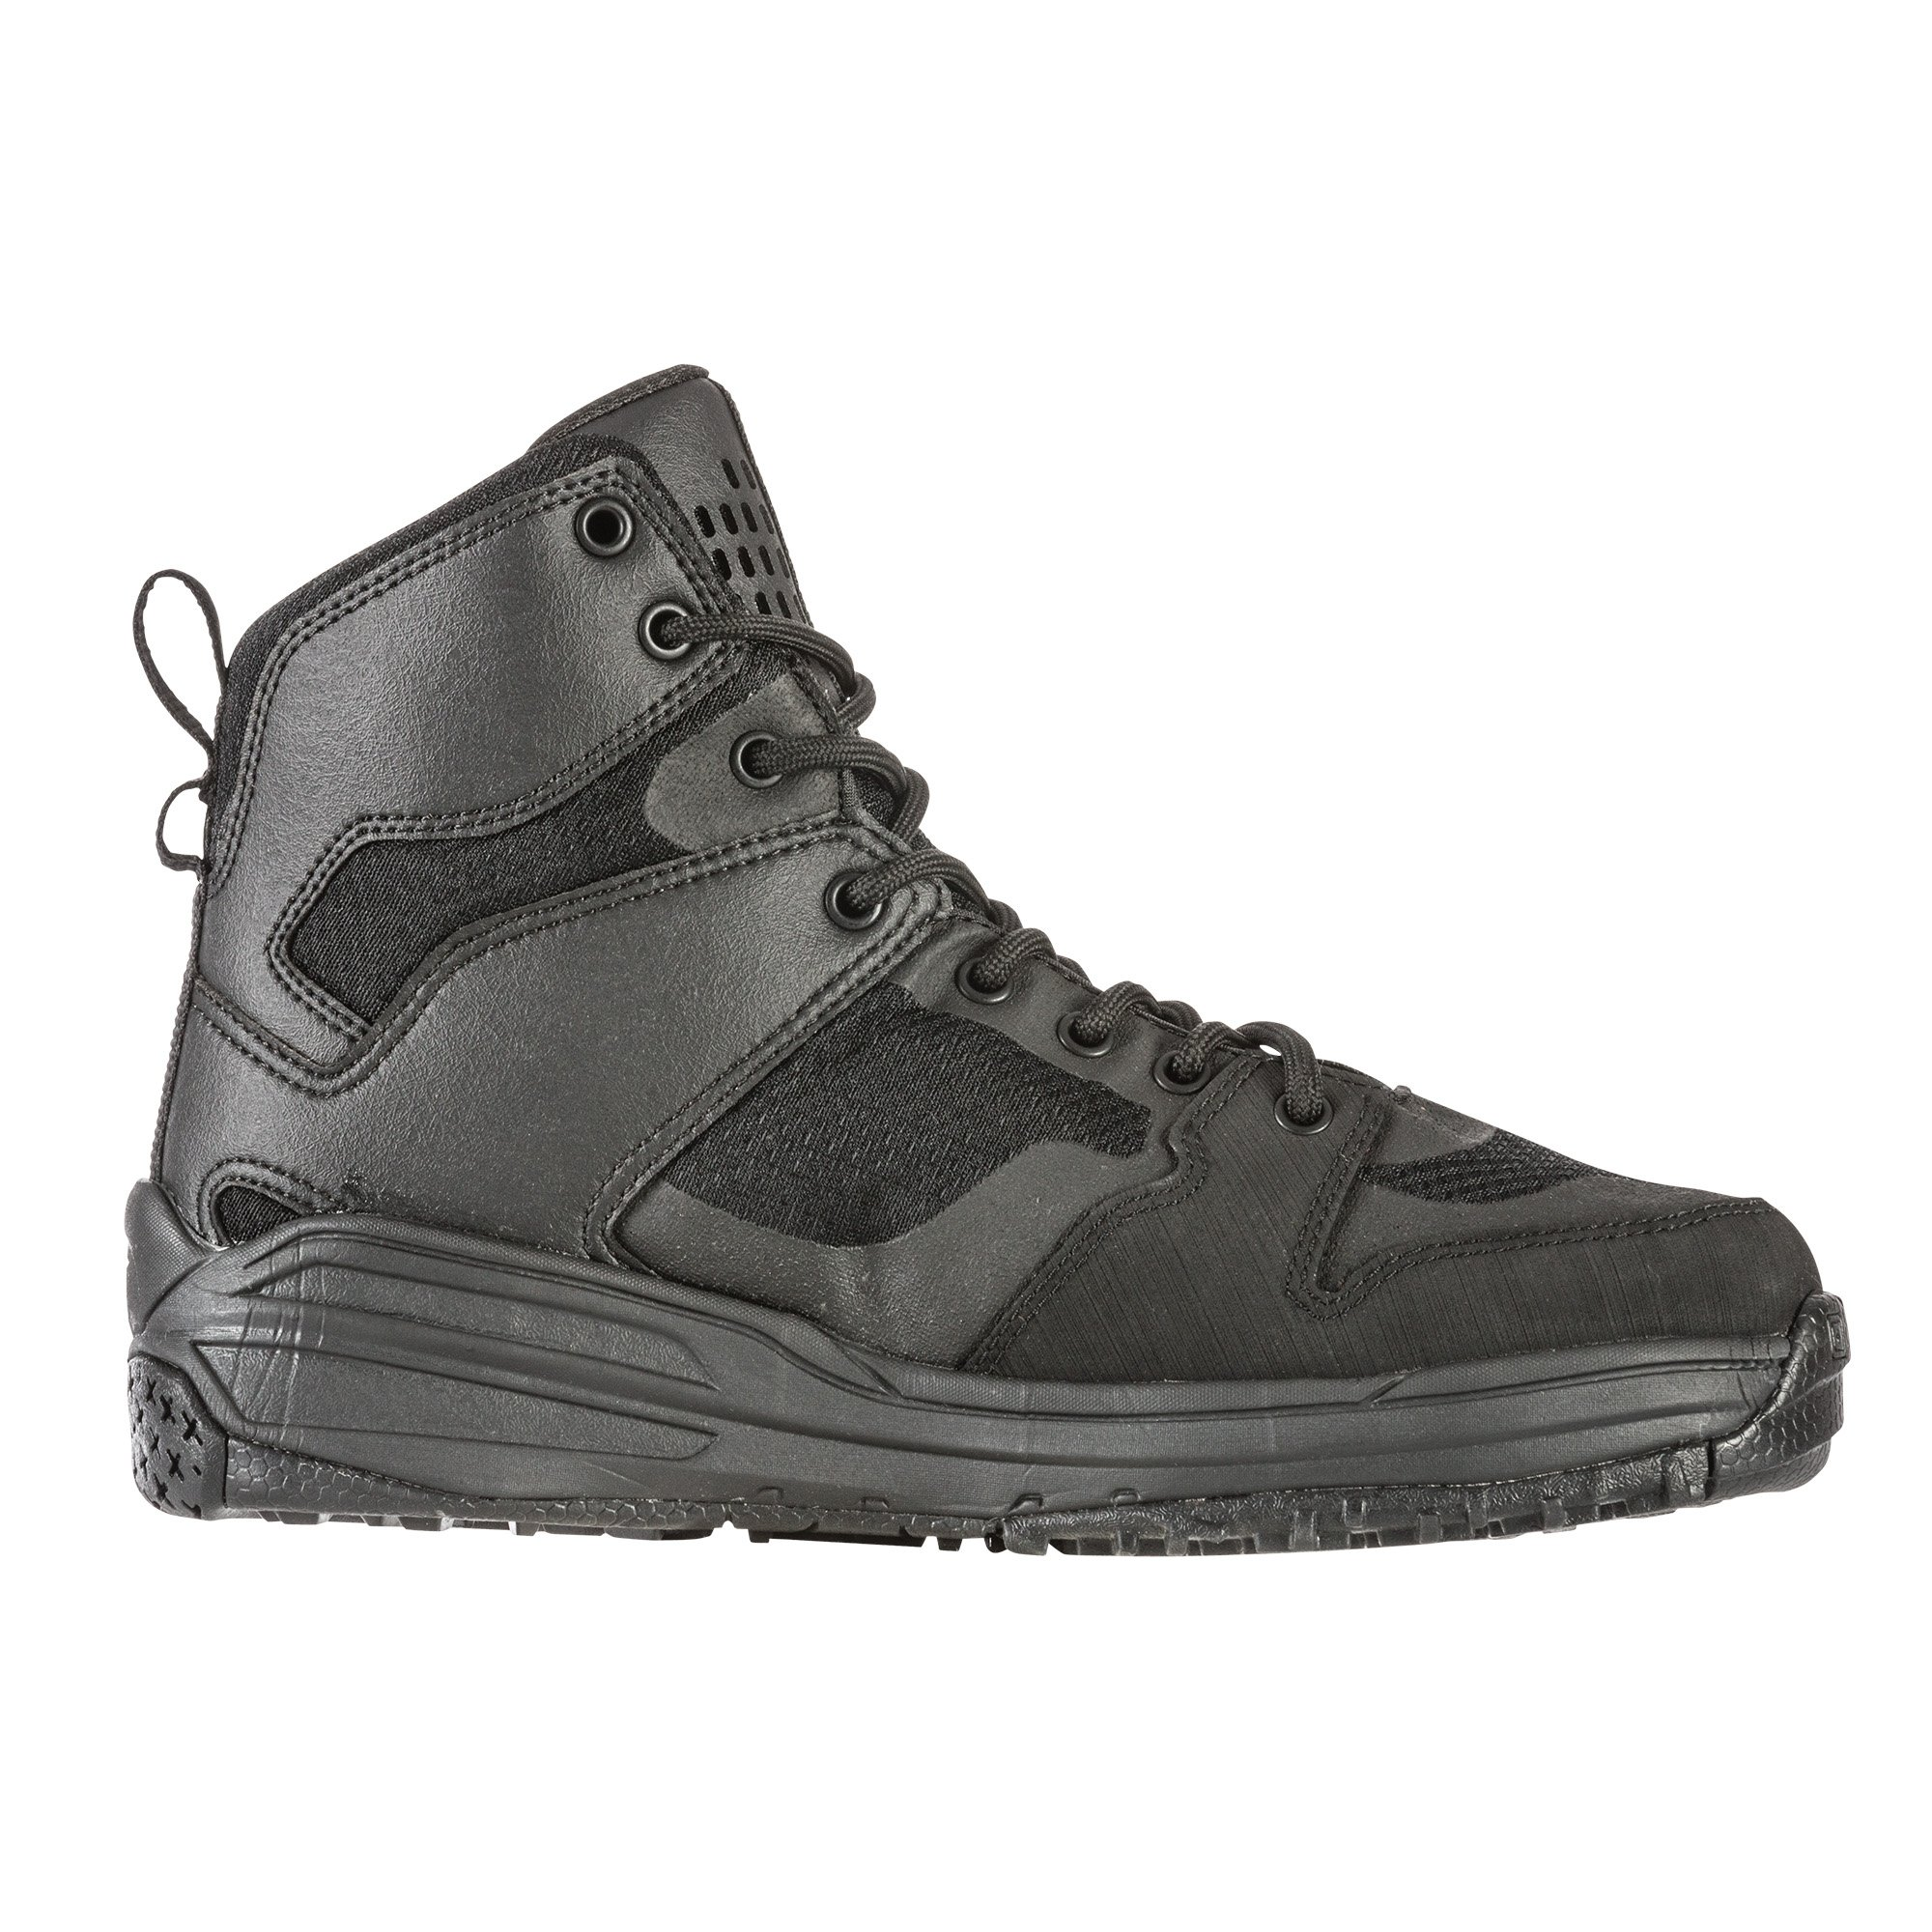 5.11 Tactical Hombre Halcyon Tactical Stealth Boots Military, Estilo 12377